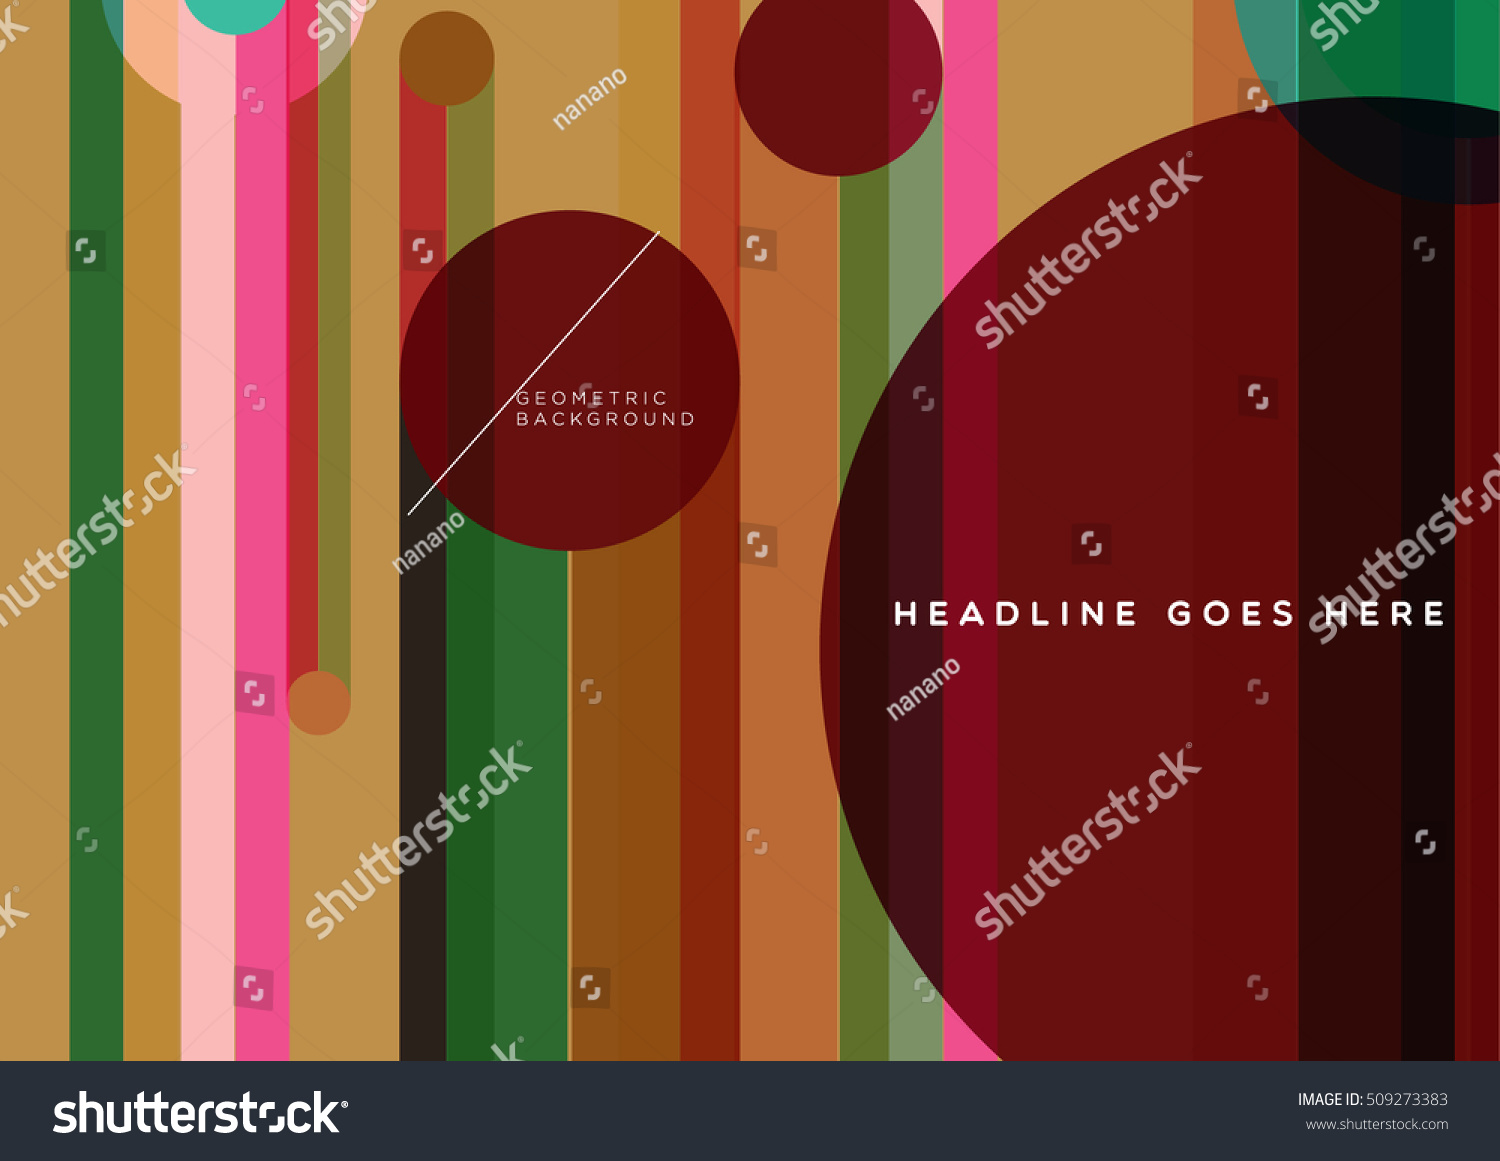 Book Cover Design Abstract : Abstract dynamic background book cover design annual